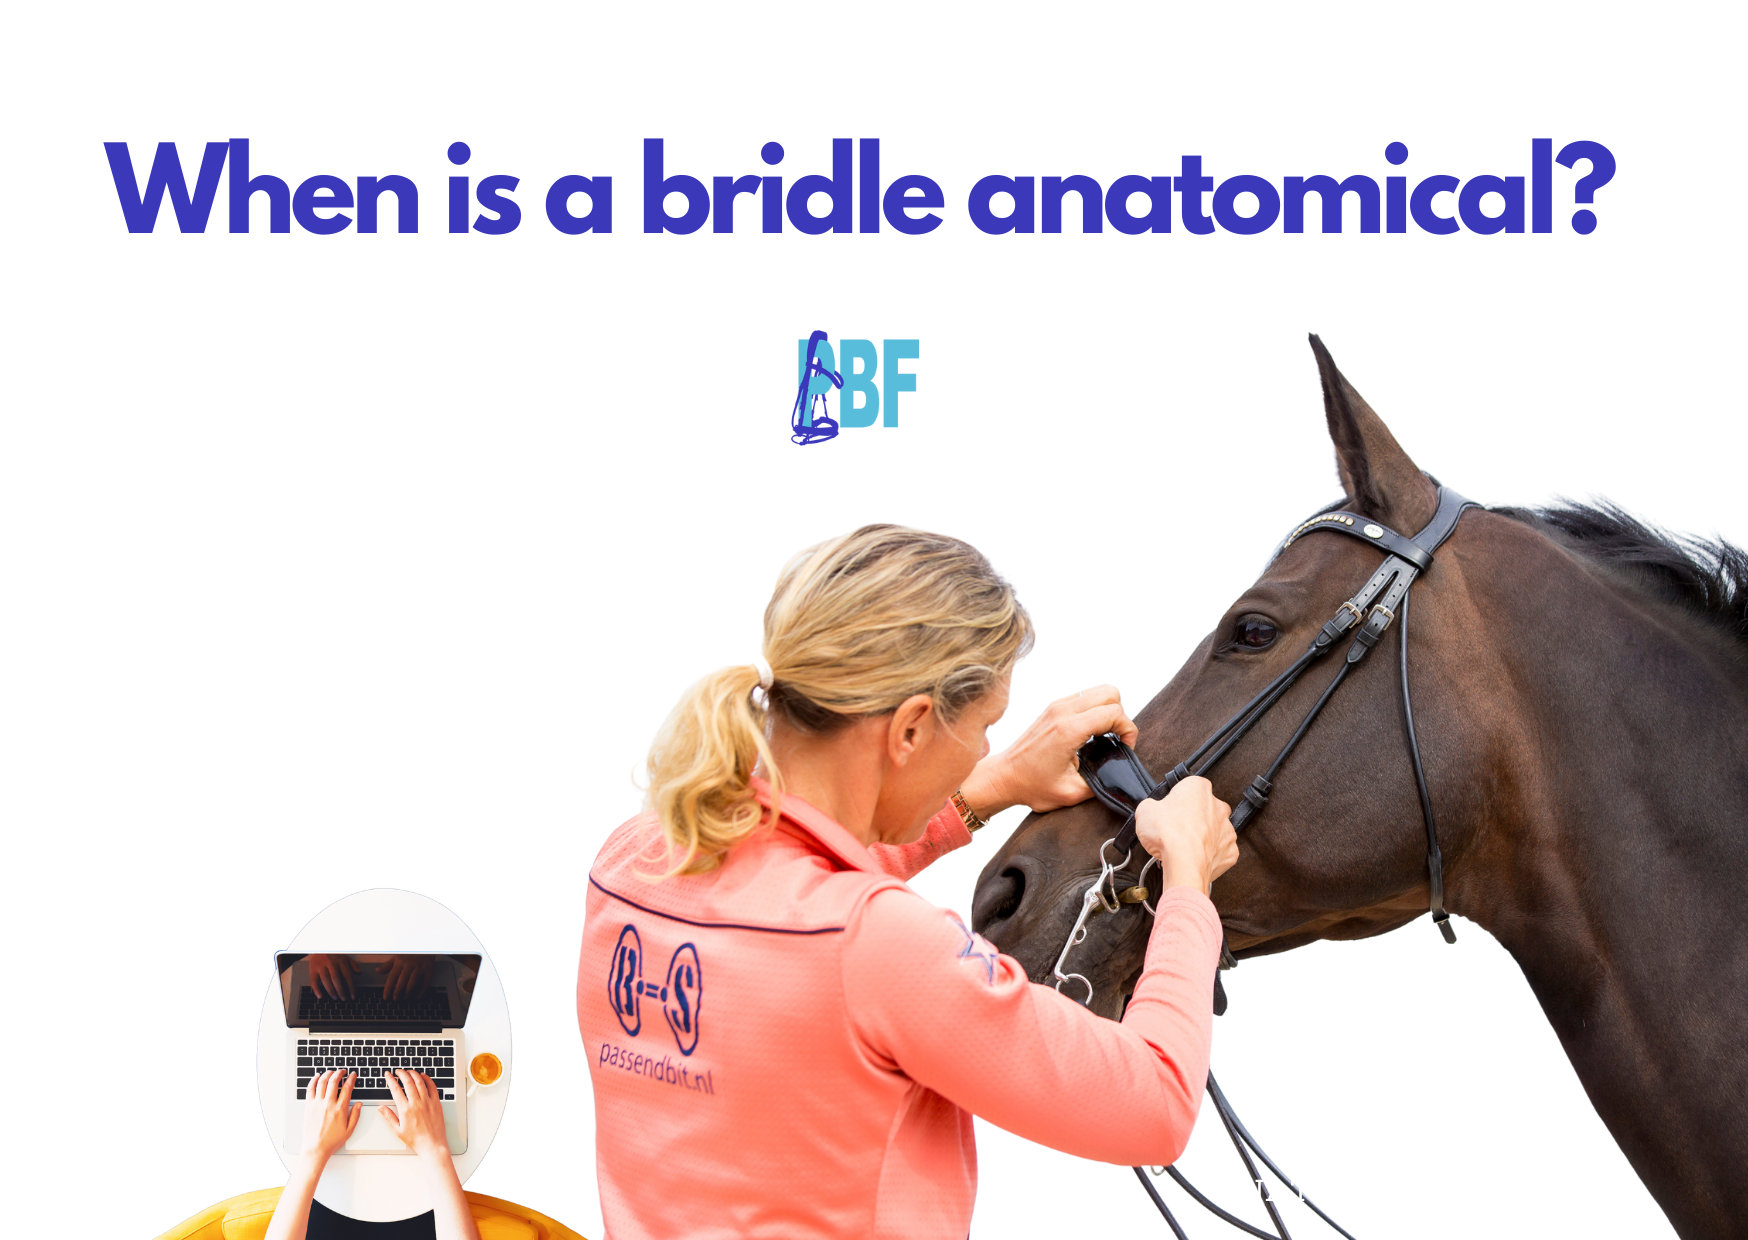 When is a bridle anatomical?